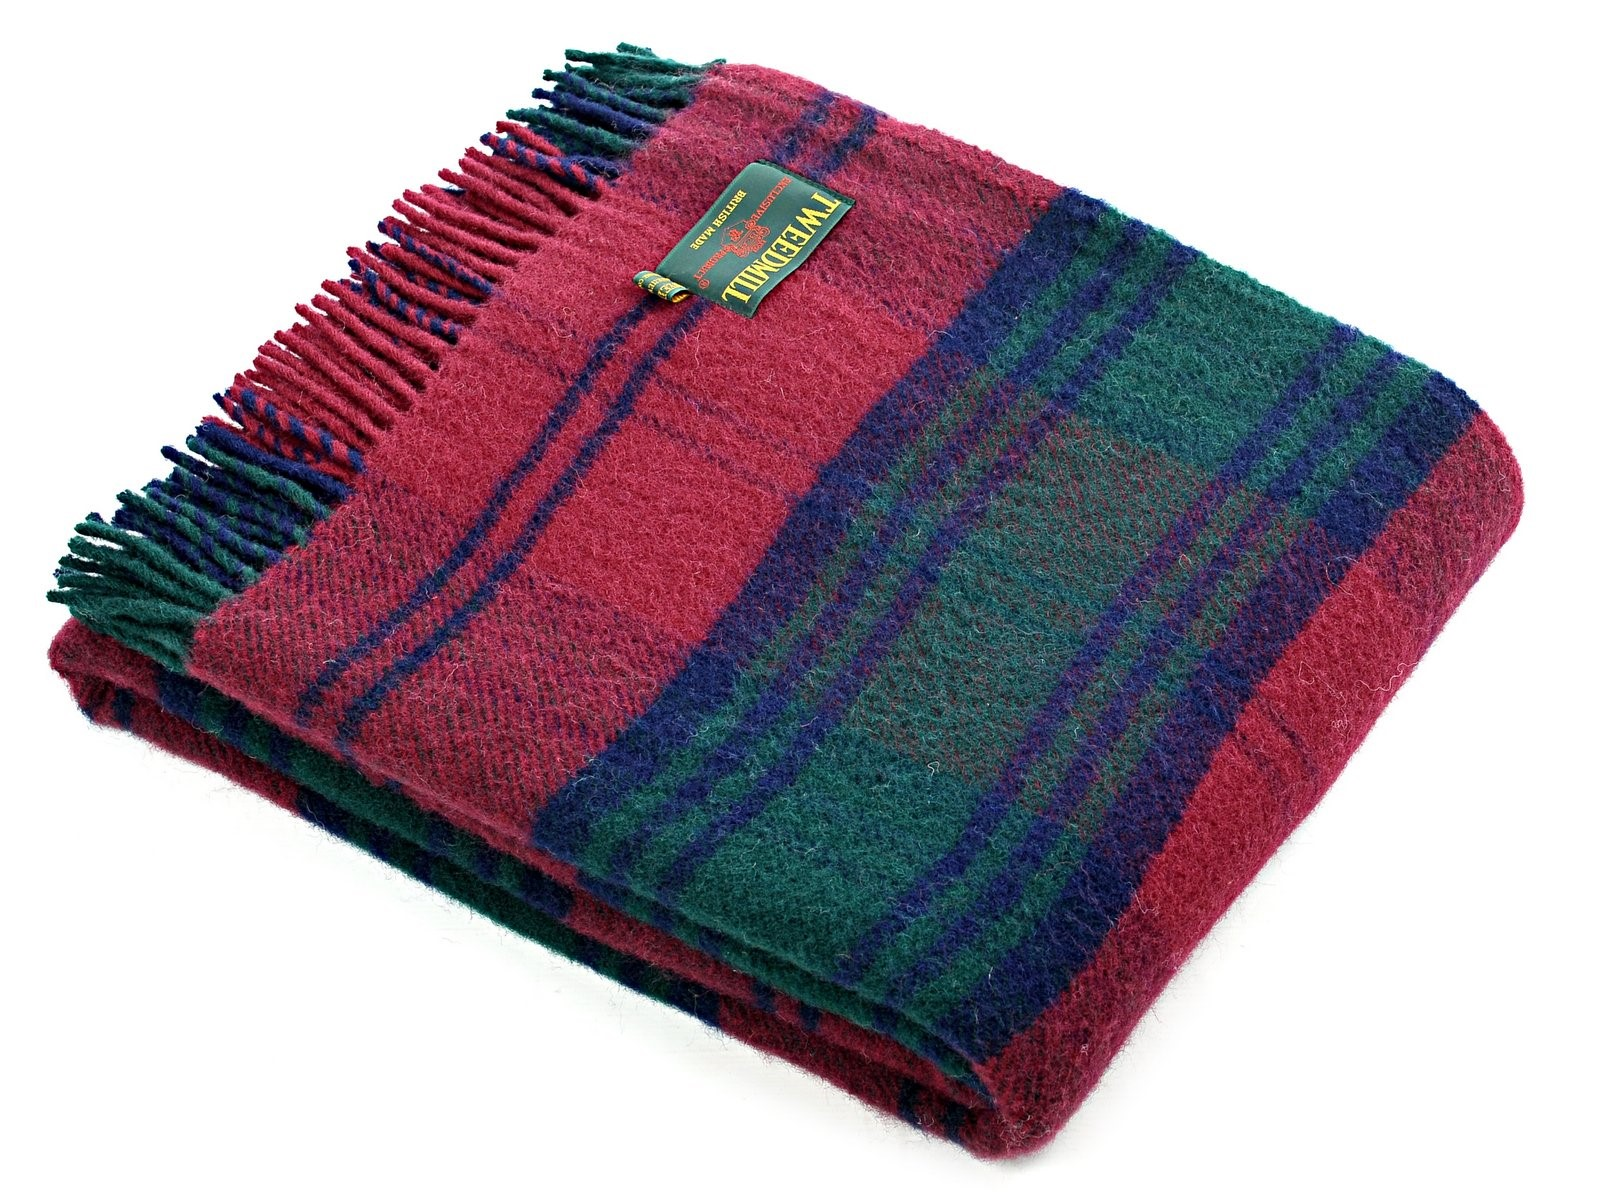 Wool Blanket Online British Made Gifts Lindsay Tartan